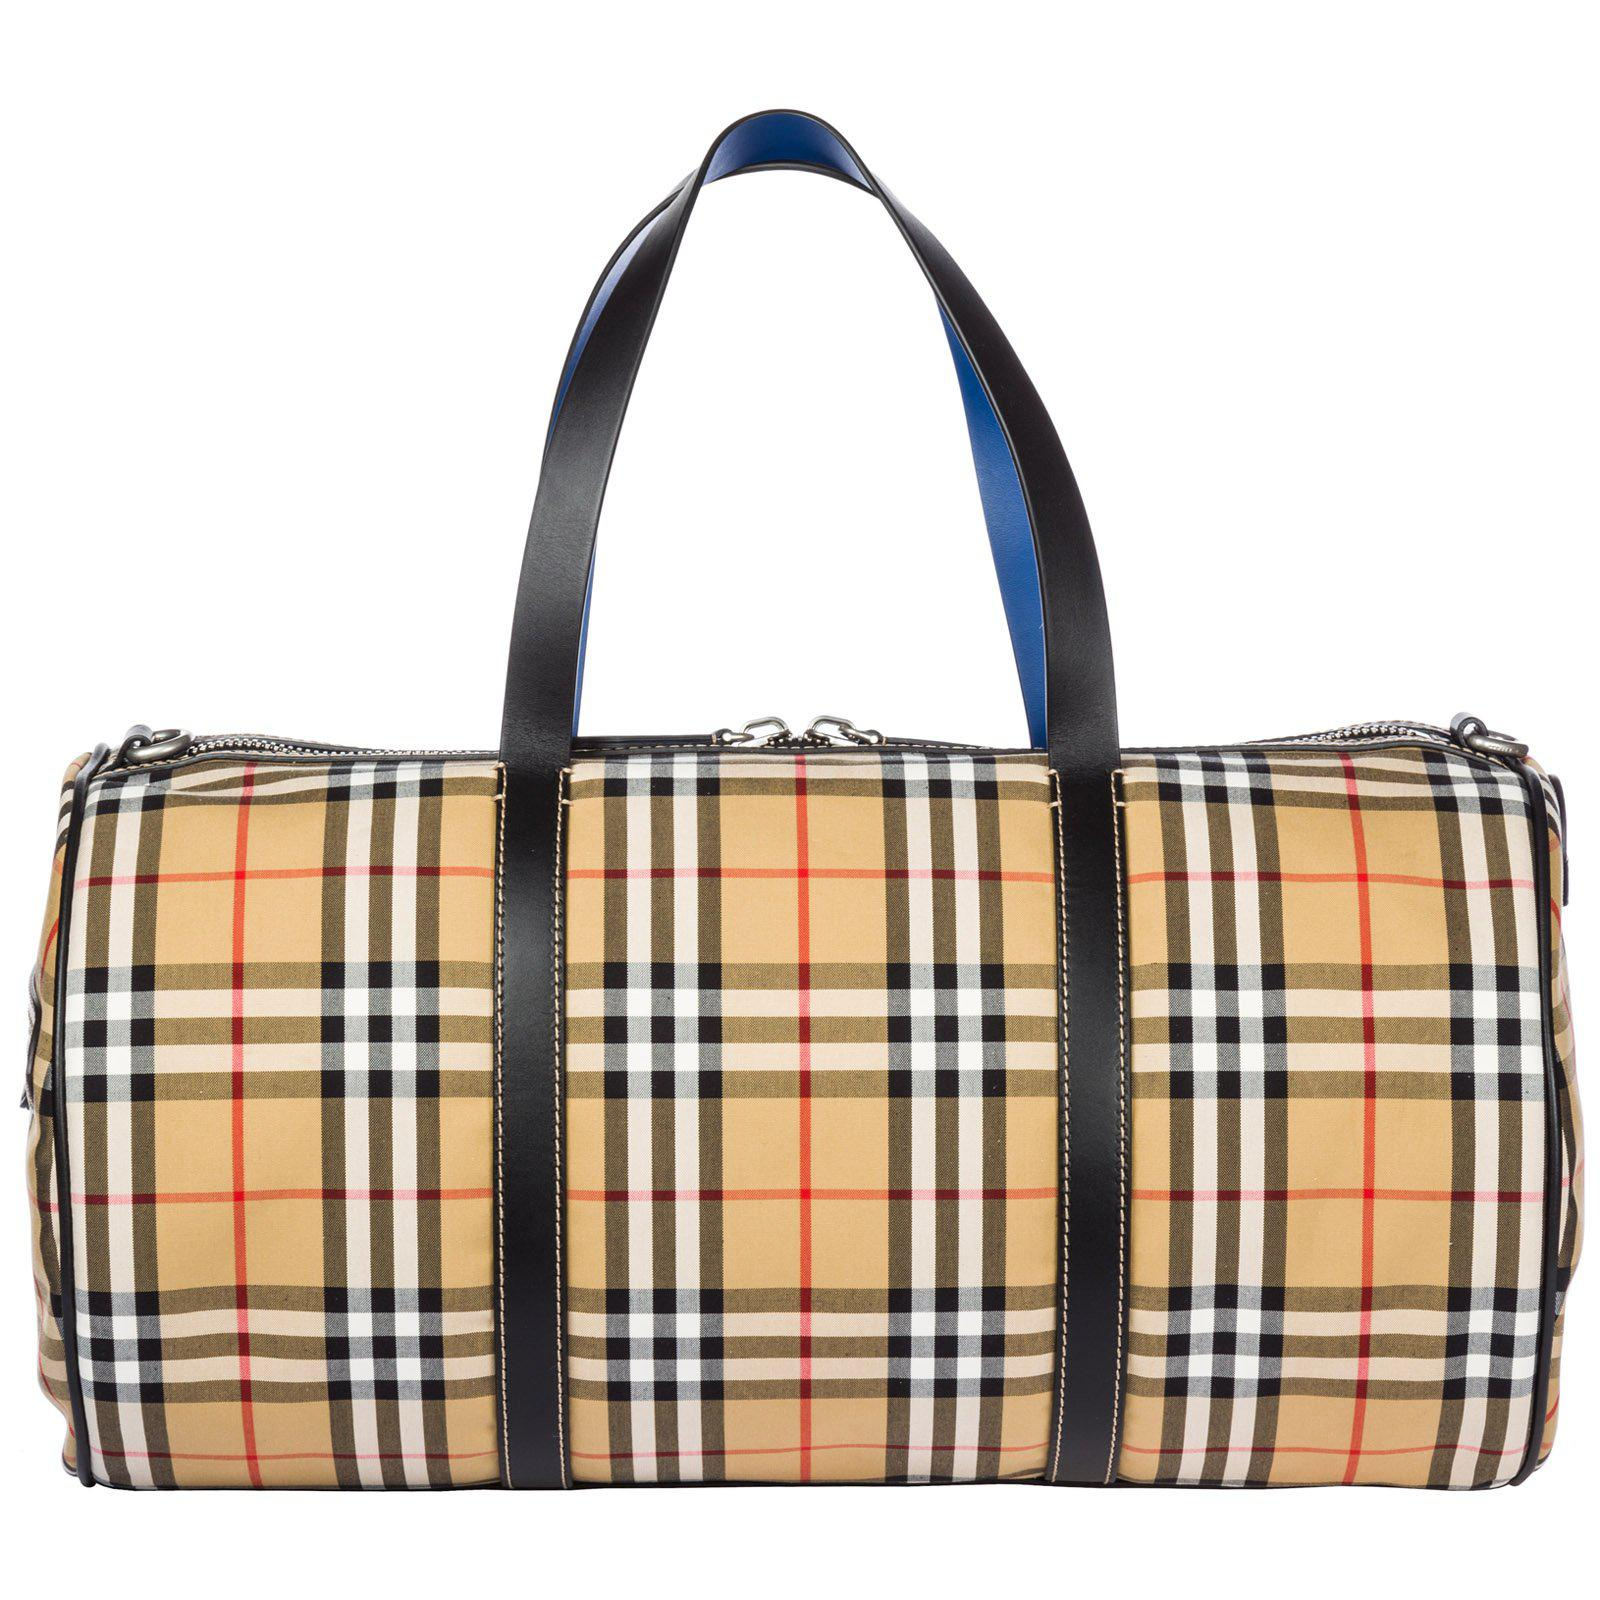 113e486a13f1 Burberry Large Vintage Check Duffle Bag in Natural for Men - Lyst